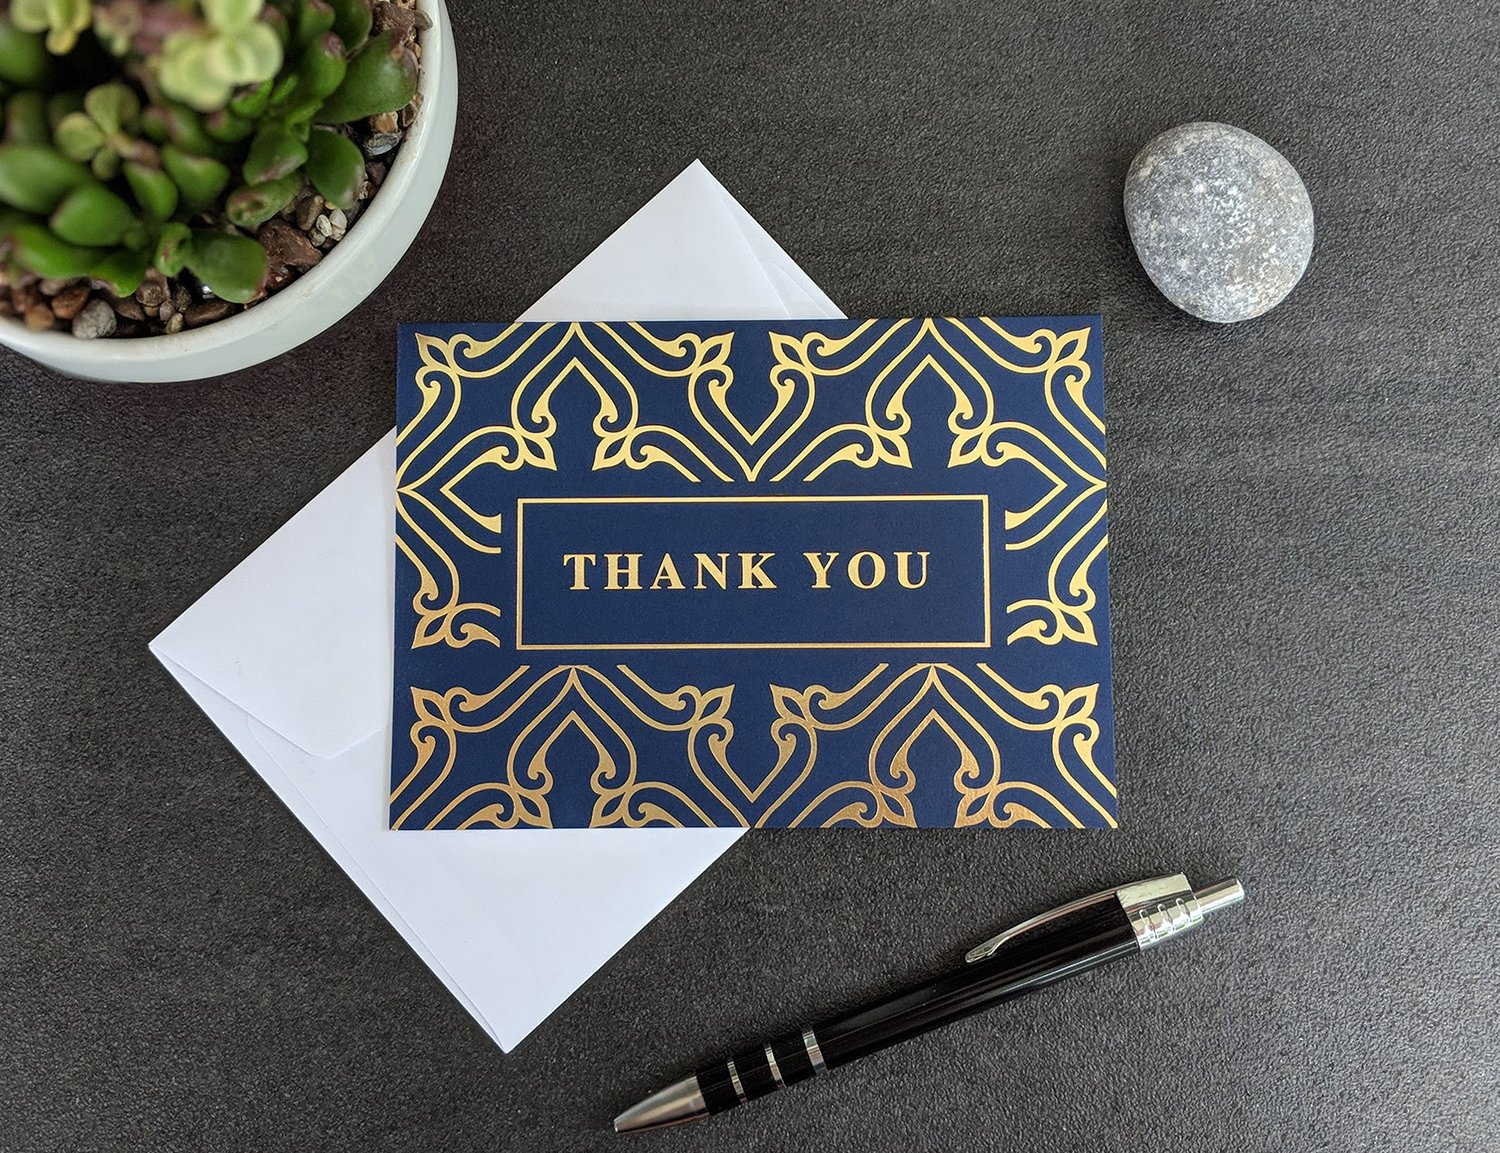 100 Thank You Cards Bulk - Thank You Notes, Navy Blue & Gold - Blank Note Cards with Envelopes - Perfect for Business, Wedding, Gift Cards, Graduation, Baby Shower, Funeral - 4x6 Photo Size by Spark Ink (Image #7)